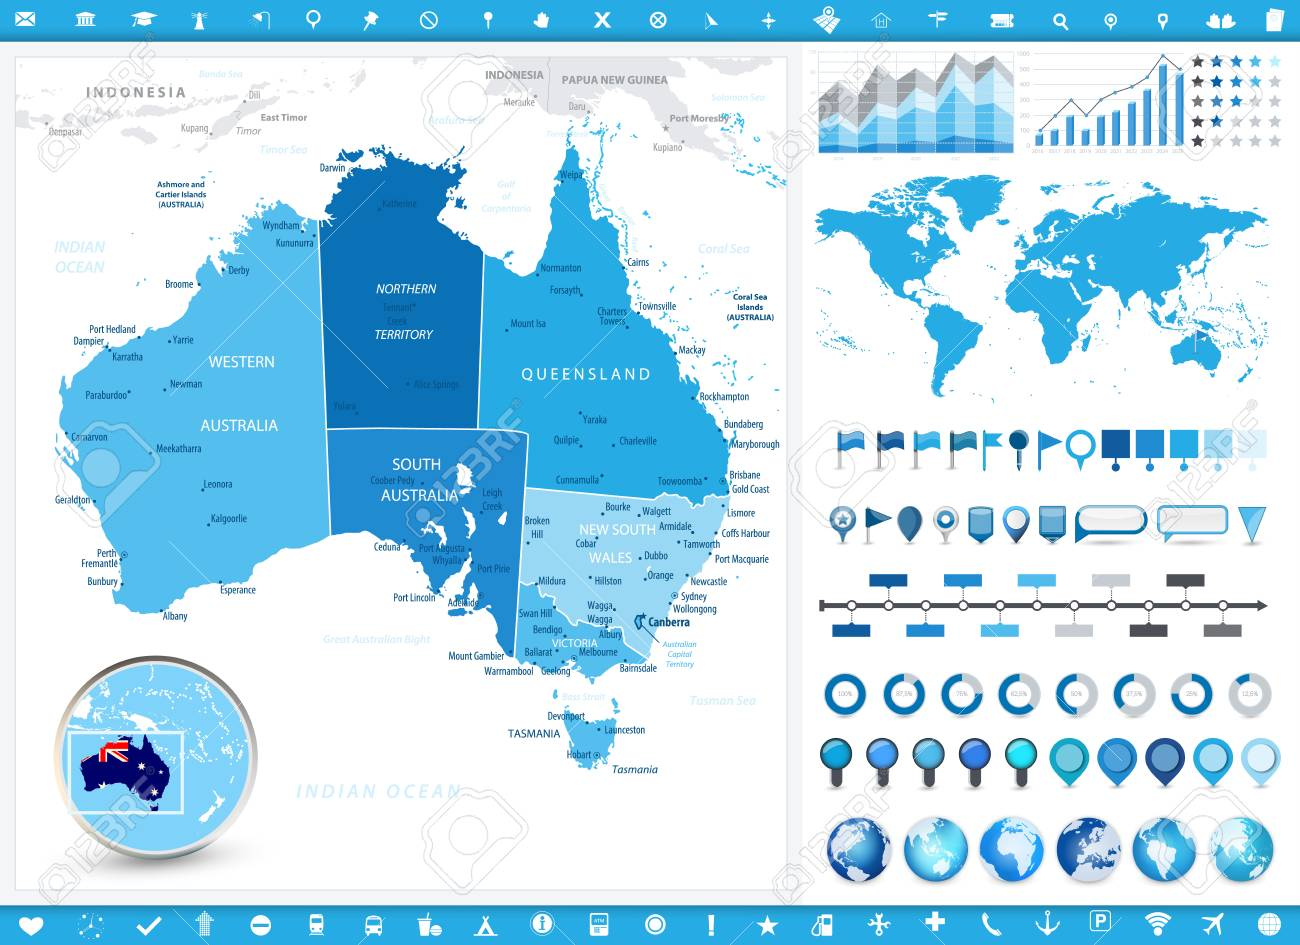 Australia Map Detailed.Australia Map And Infographic Elements Detailed Vector Illustration